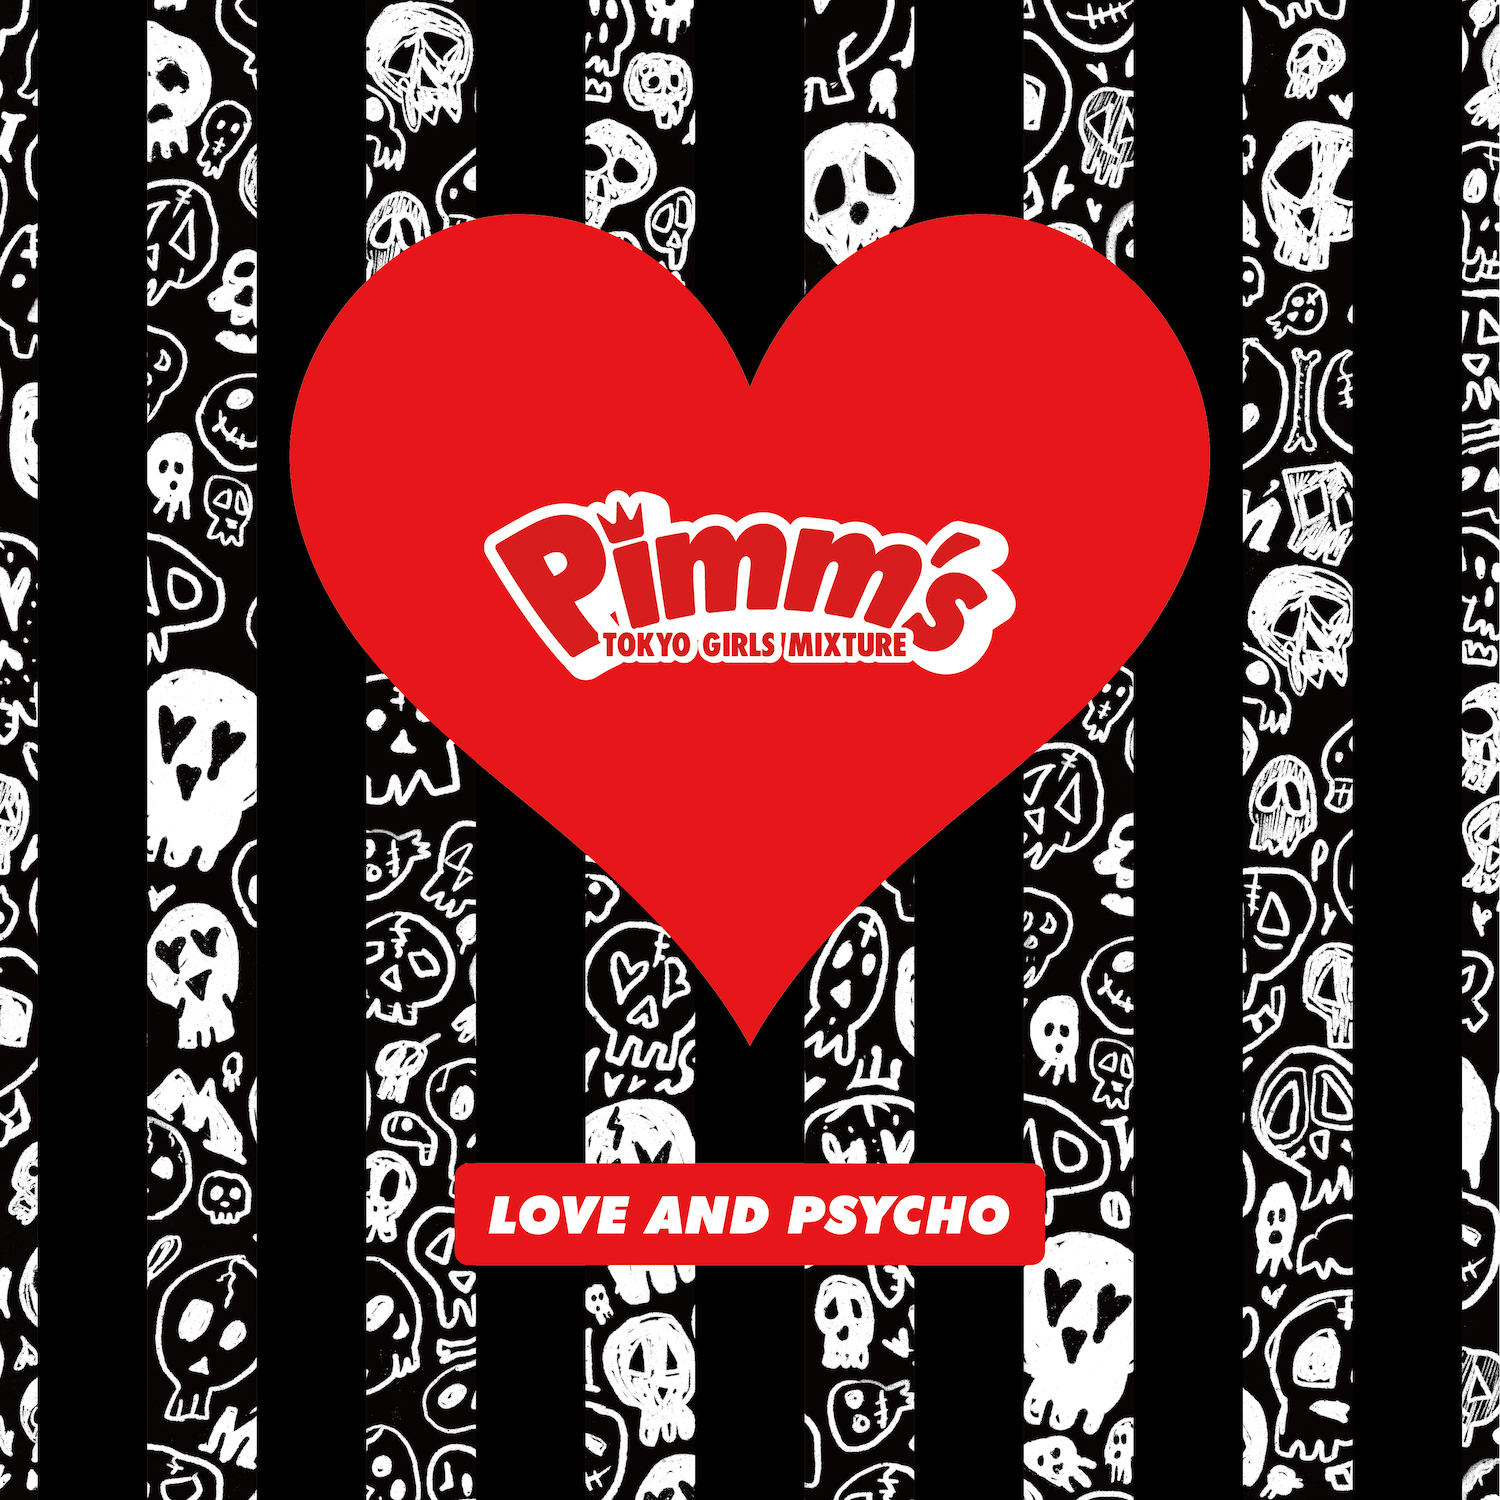 Pimm's・2nd MiniAlbum「LOVE AND PSYCHO」